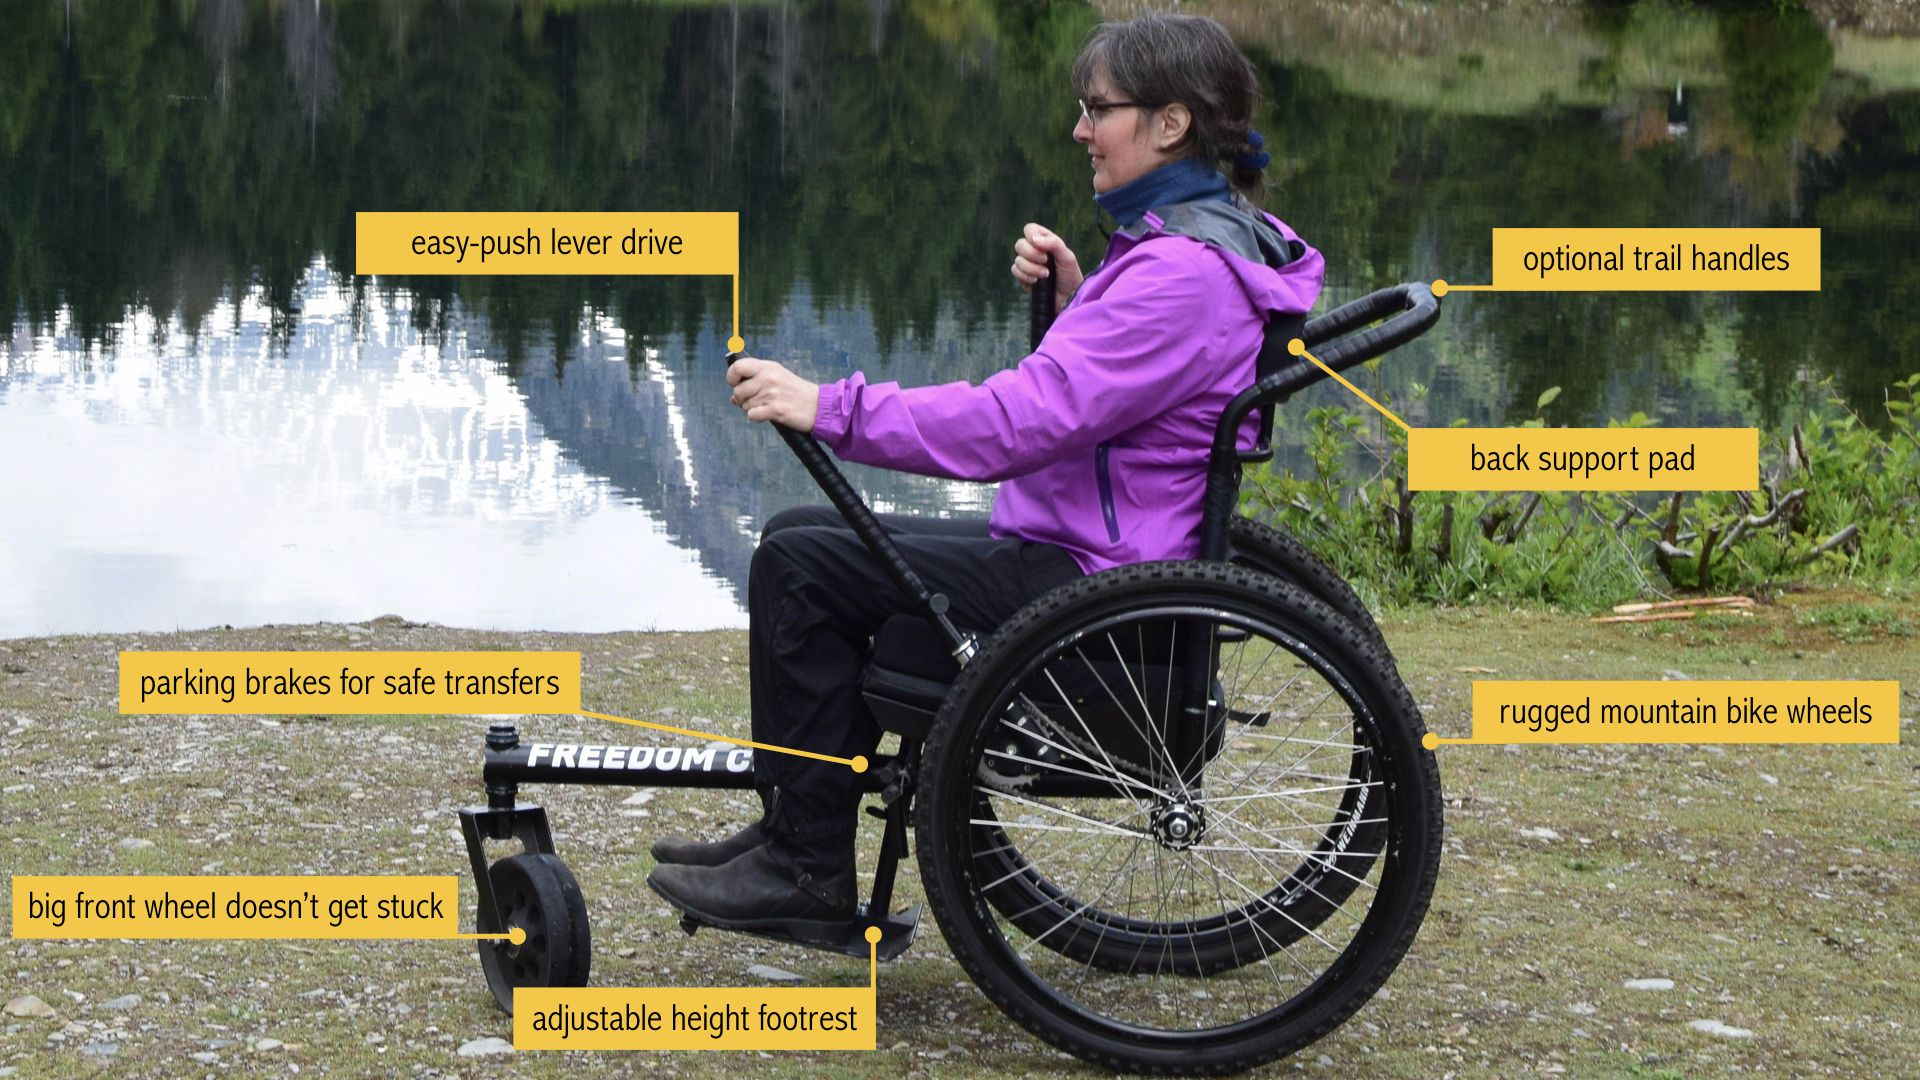 The Grit Freedom Chair S Easy To Push Lever Drive Combines The